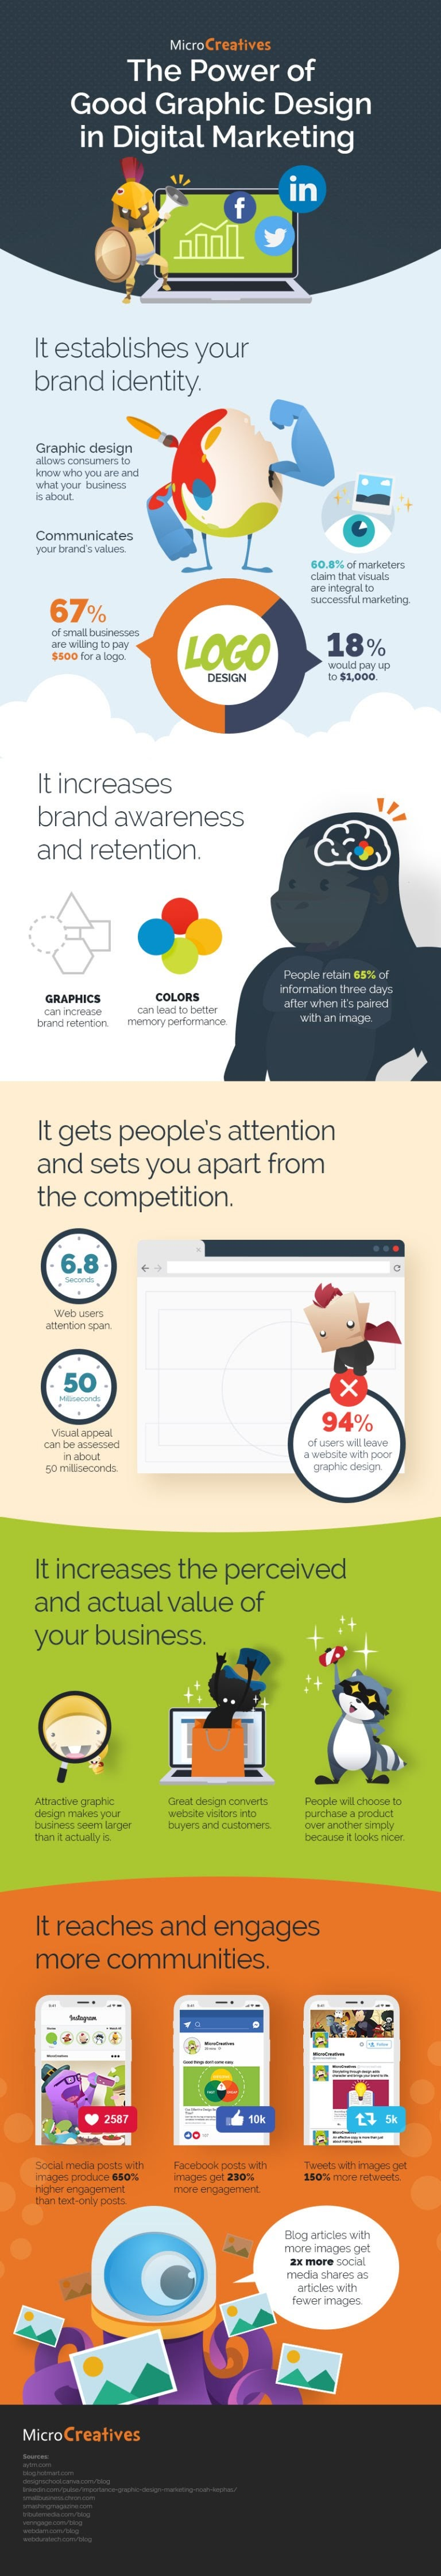 The Power Of Good Graphic Design In Digital Marketing - #infographic